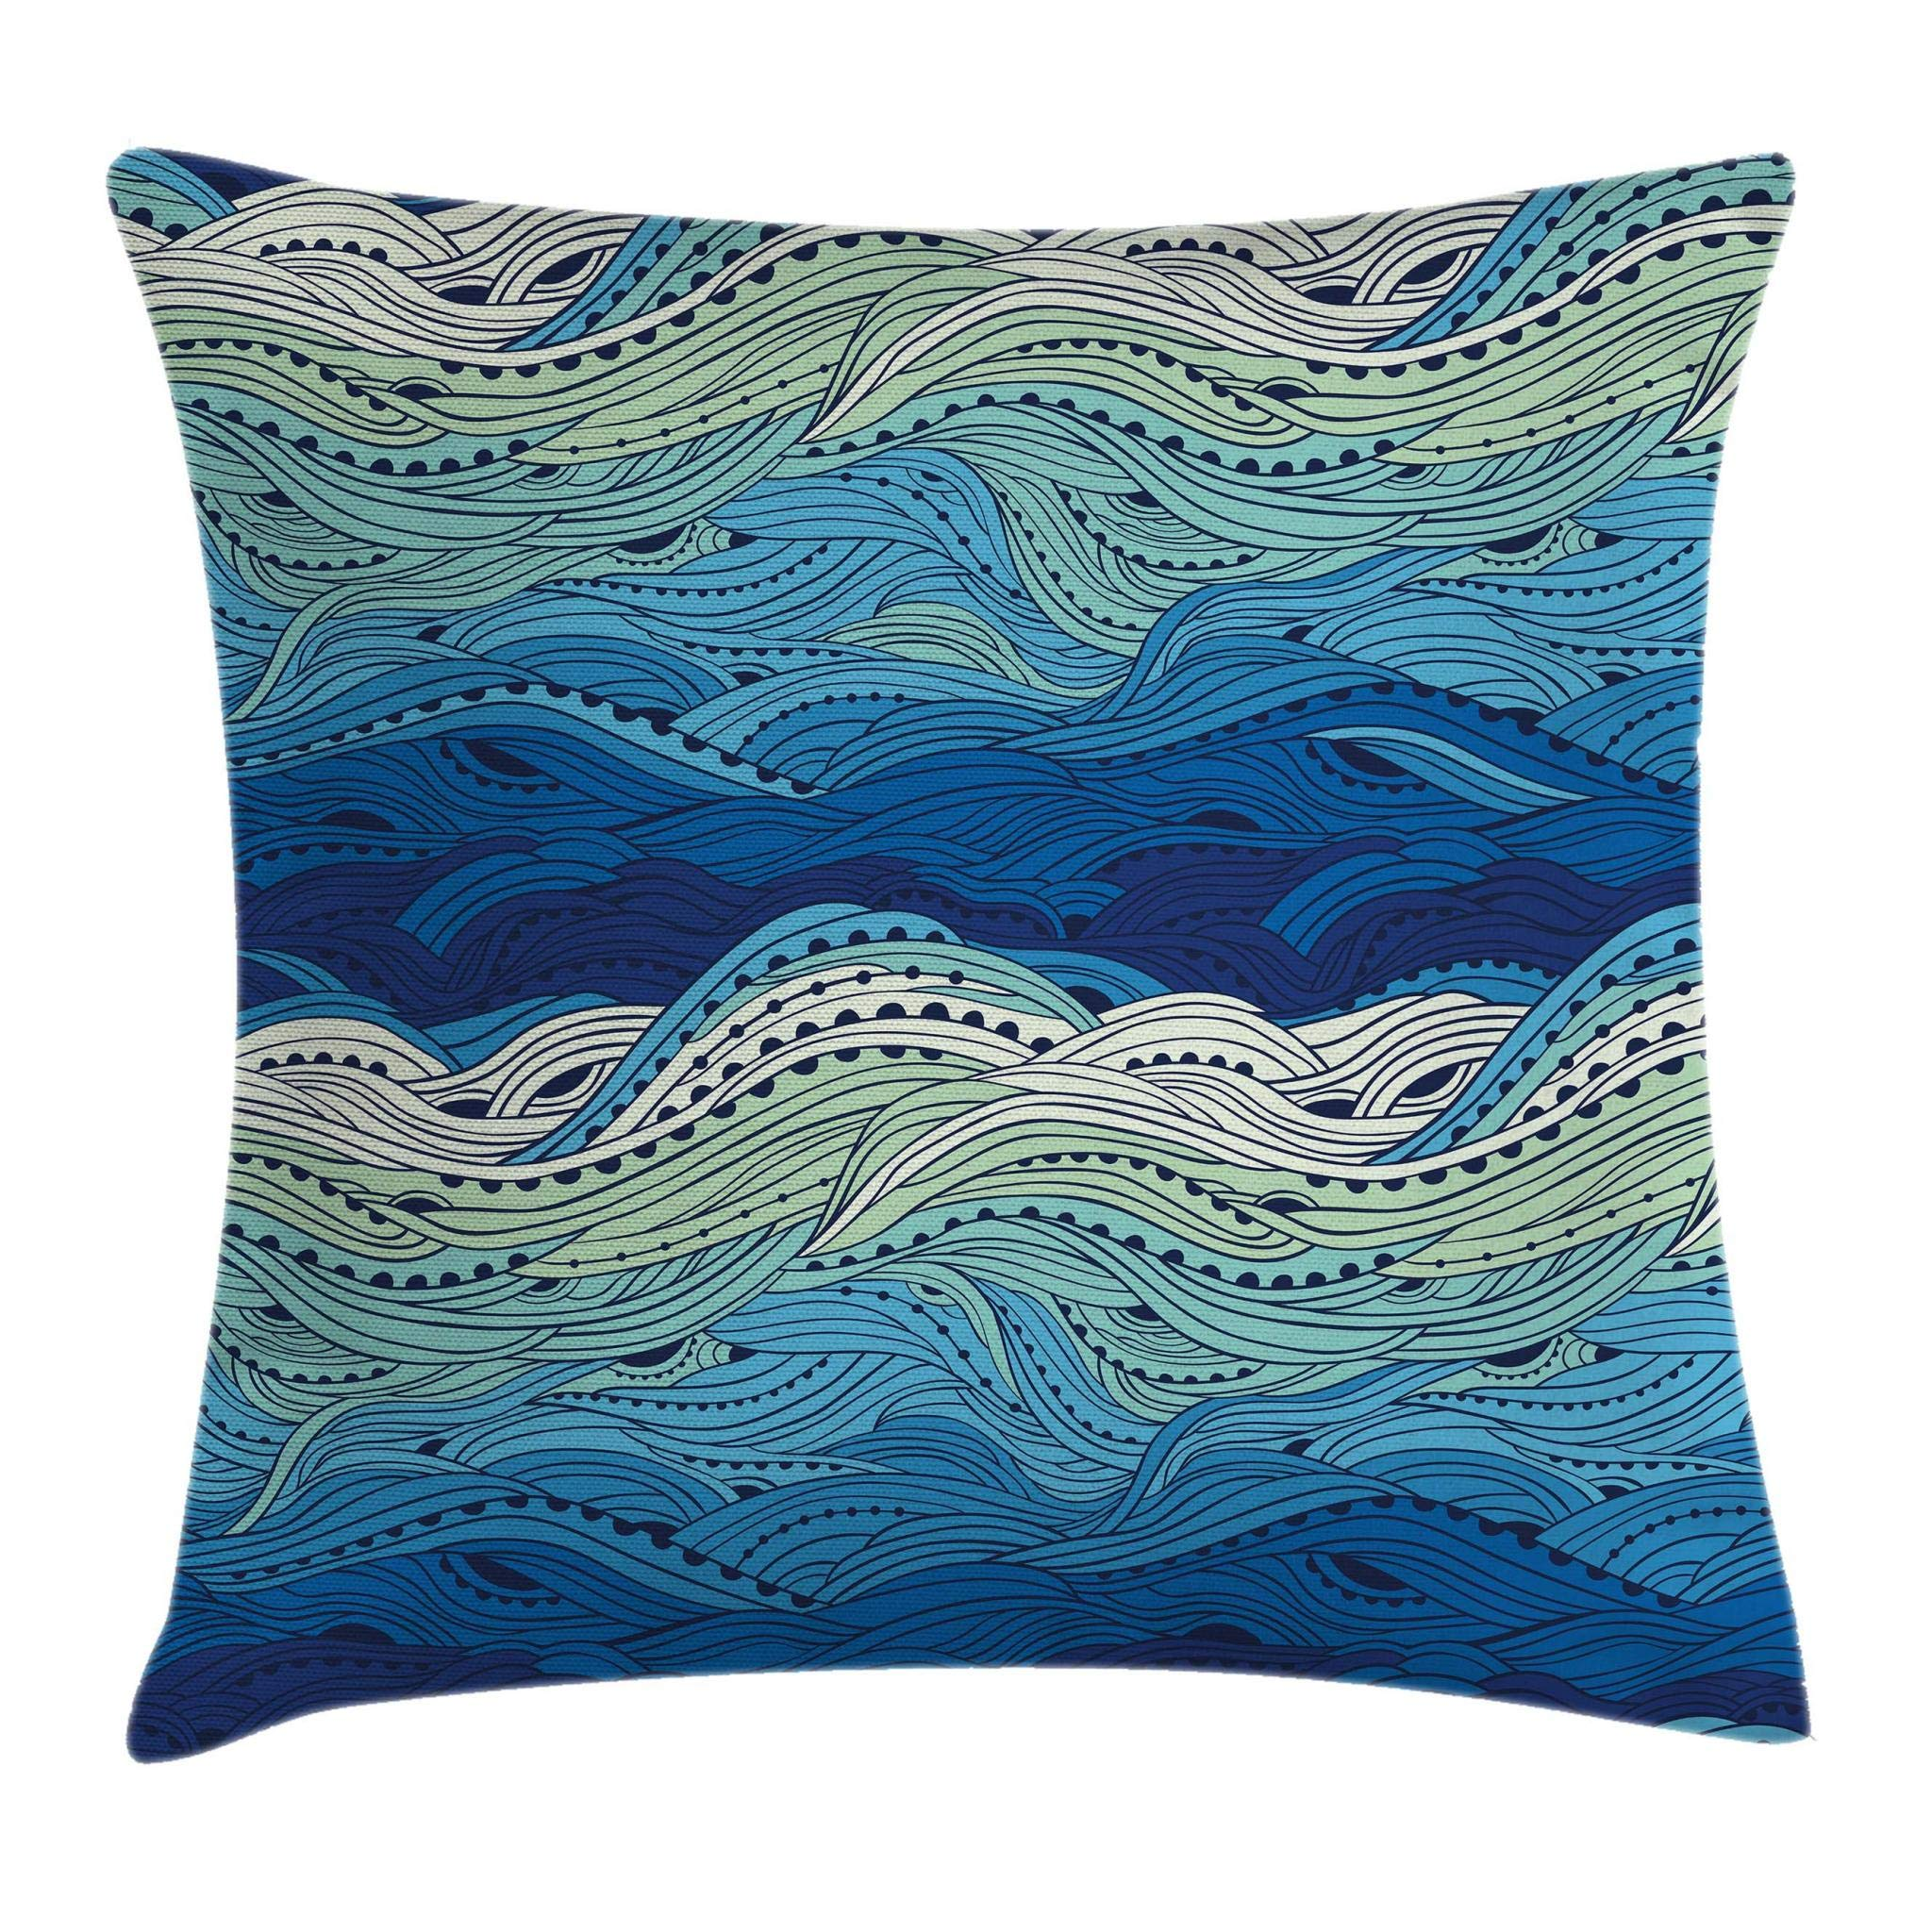 Ambesonne Aquatic Throw Pillow Cushion Cover by, Conceptual Ocean Themed Artwork Hand Drawn Waves Seascape Maritime, Decorative Square Accent Pillow Case, 18 X 18 Inches, Blue Light Blue Mint Green